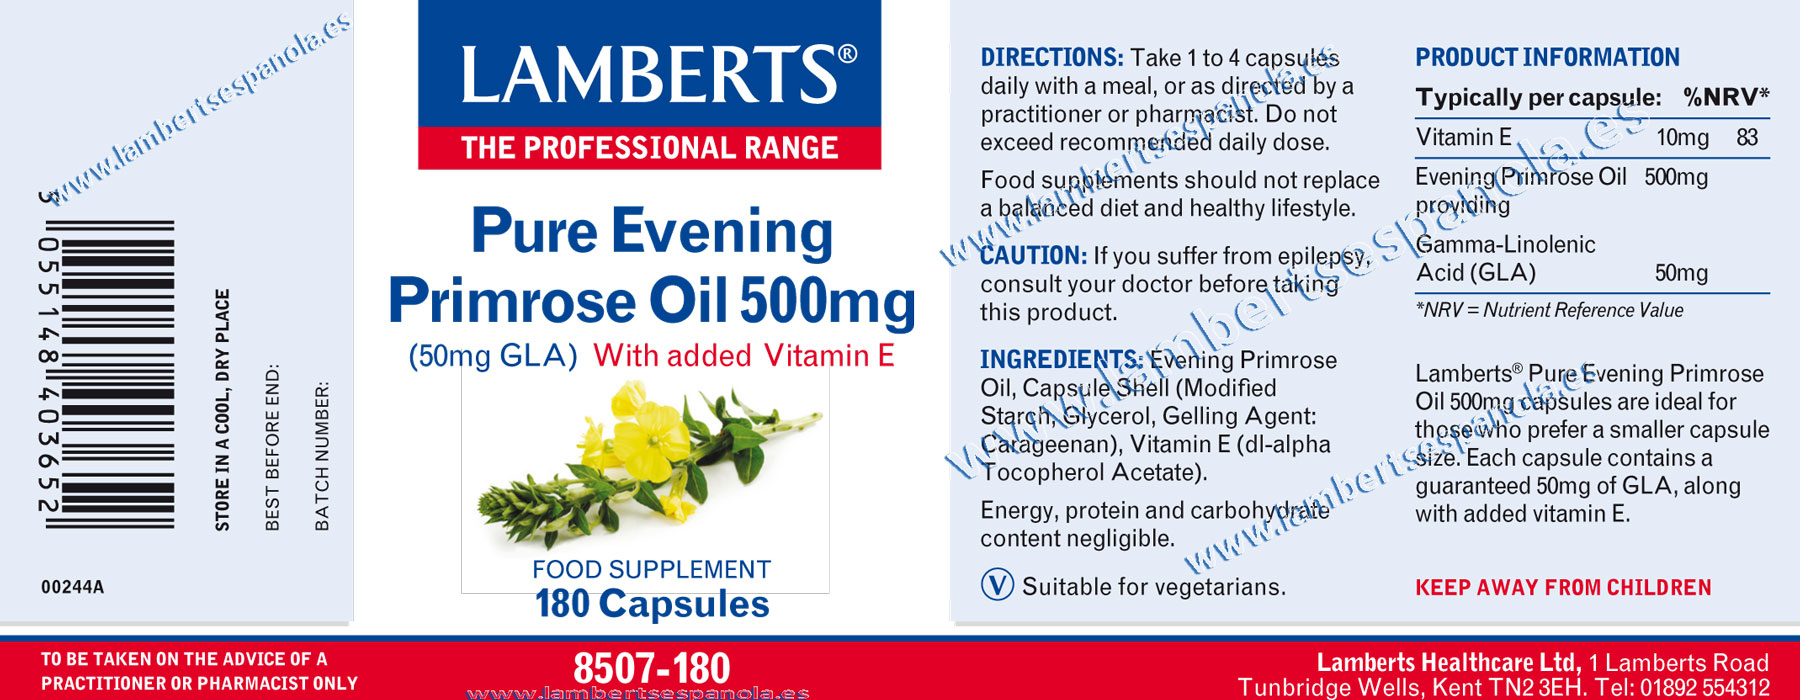 Pure evening primrose oil properties